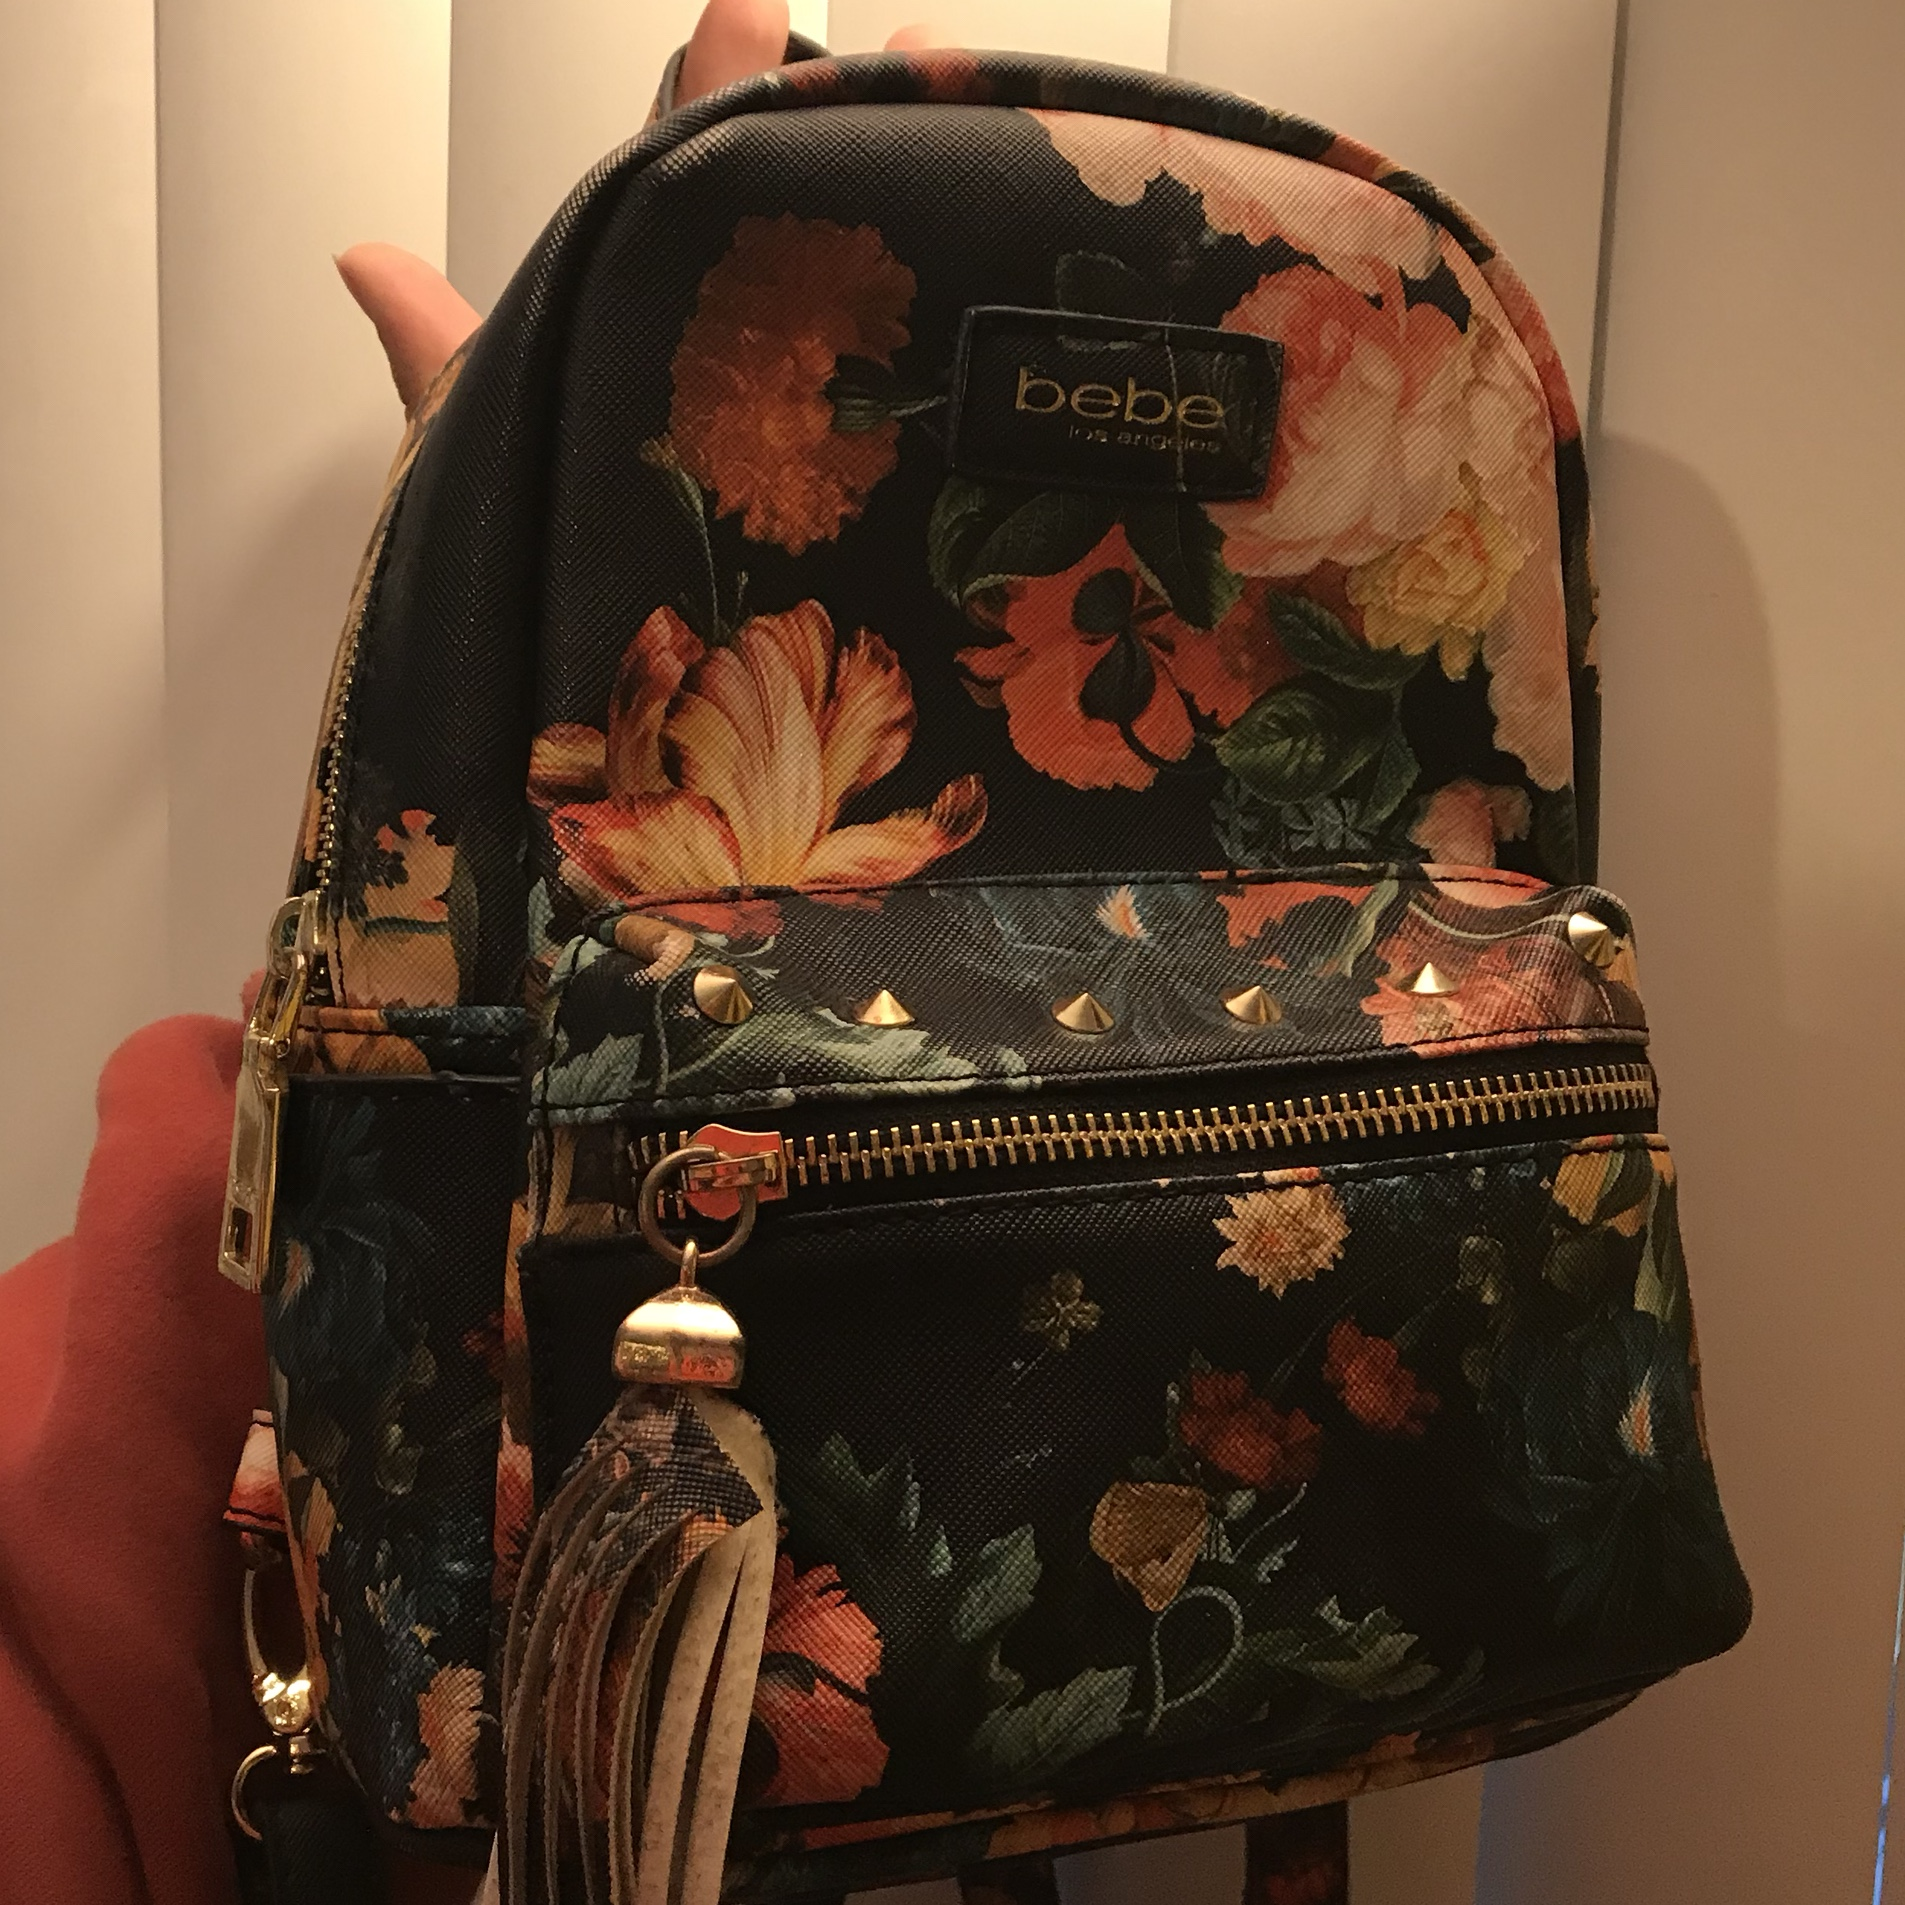 bebe floral mini backpack the tassel is peeling    - Depop